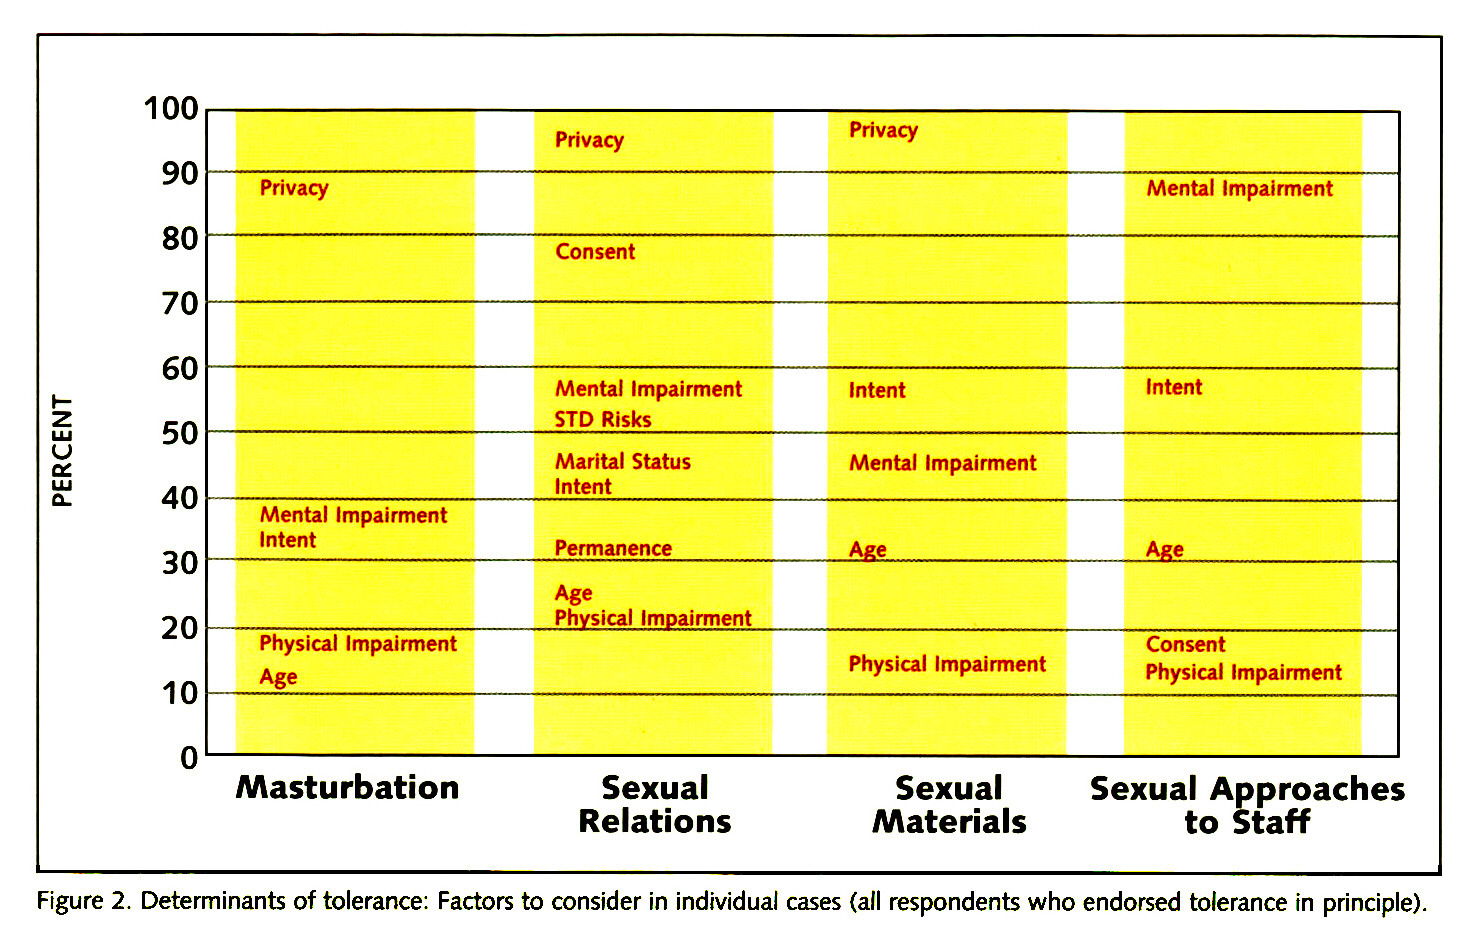 Figure 2. Determinants of tolerance: Factors to consider in individual cases (all respondents who endorsed tolerance in principle).